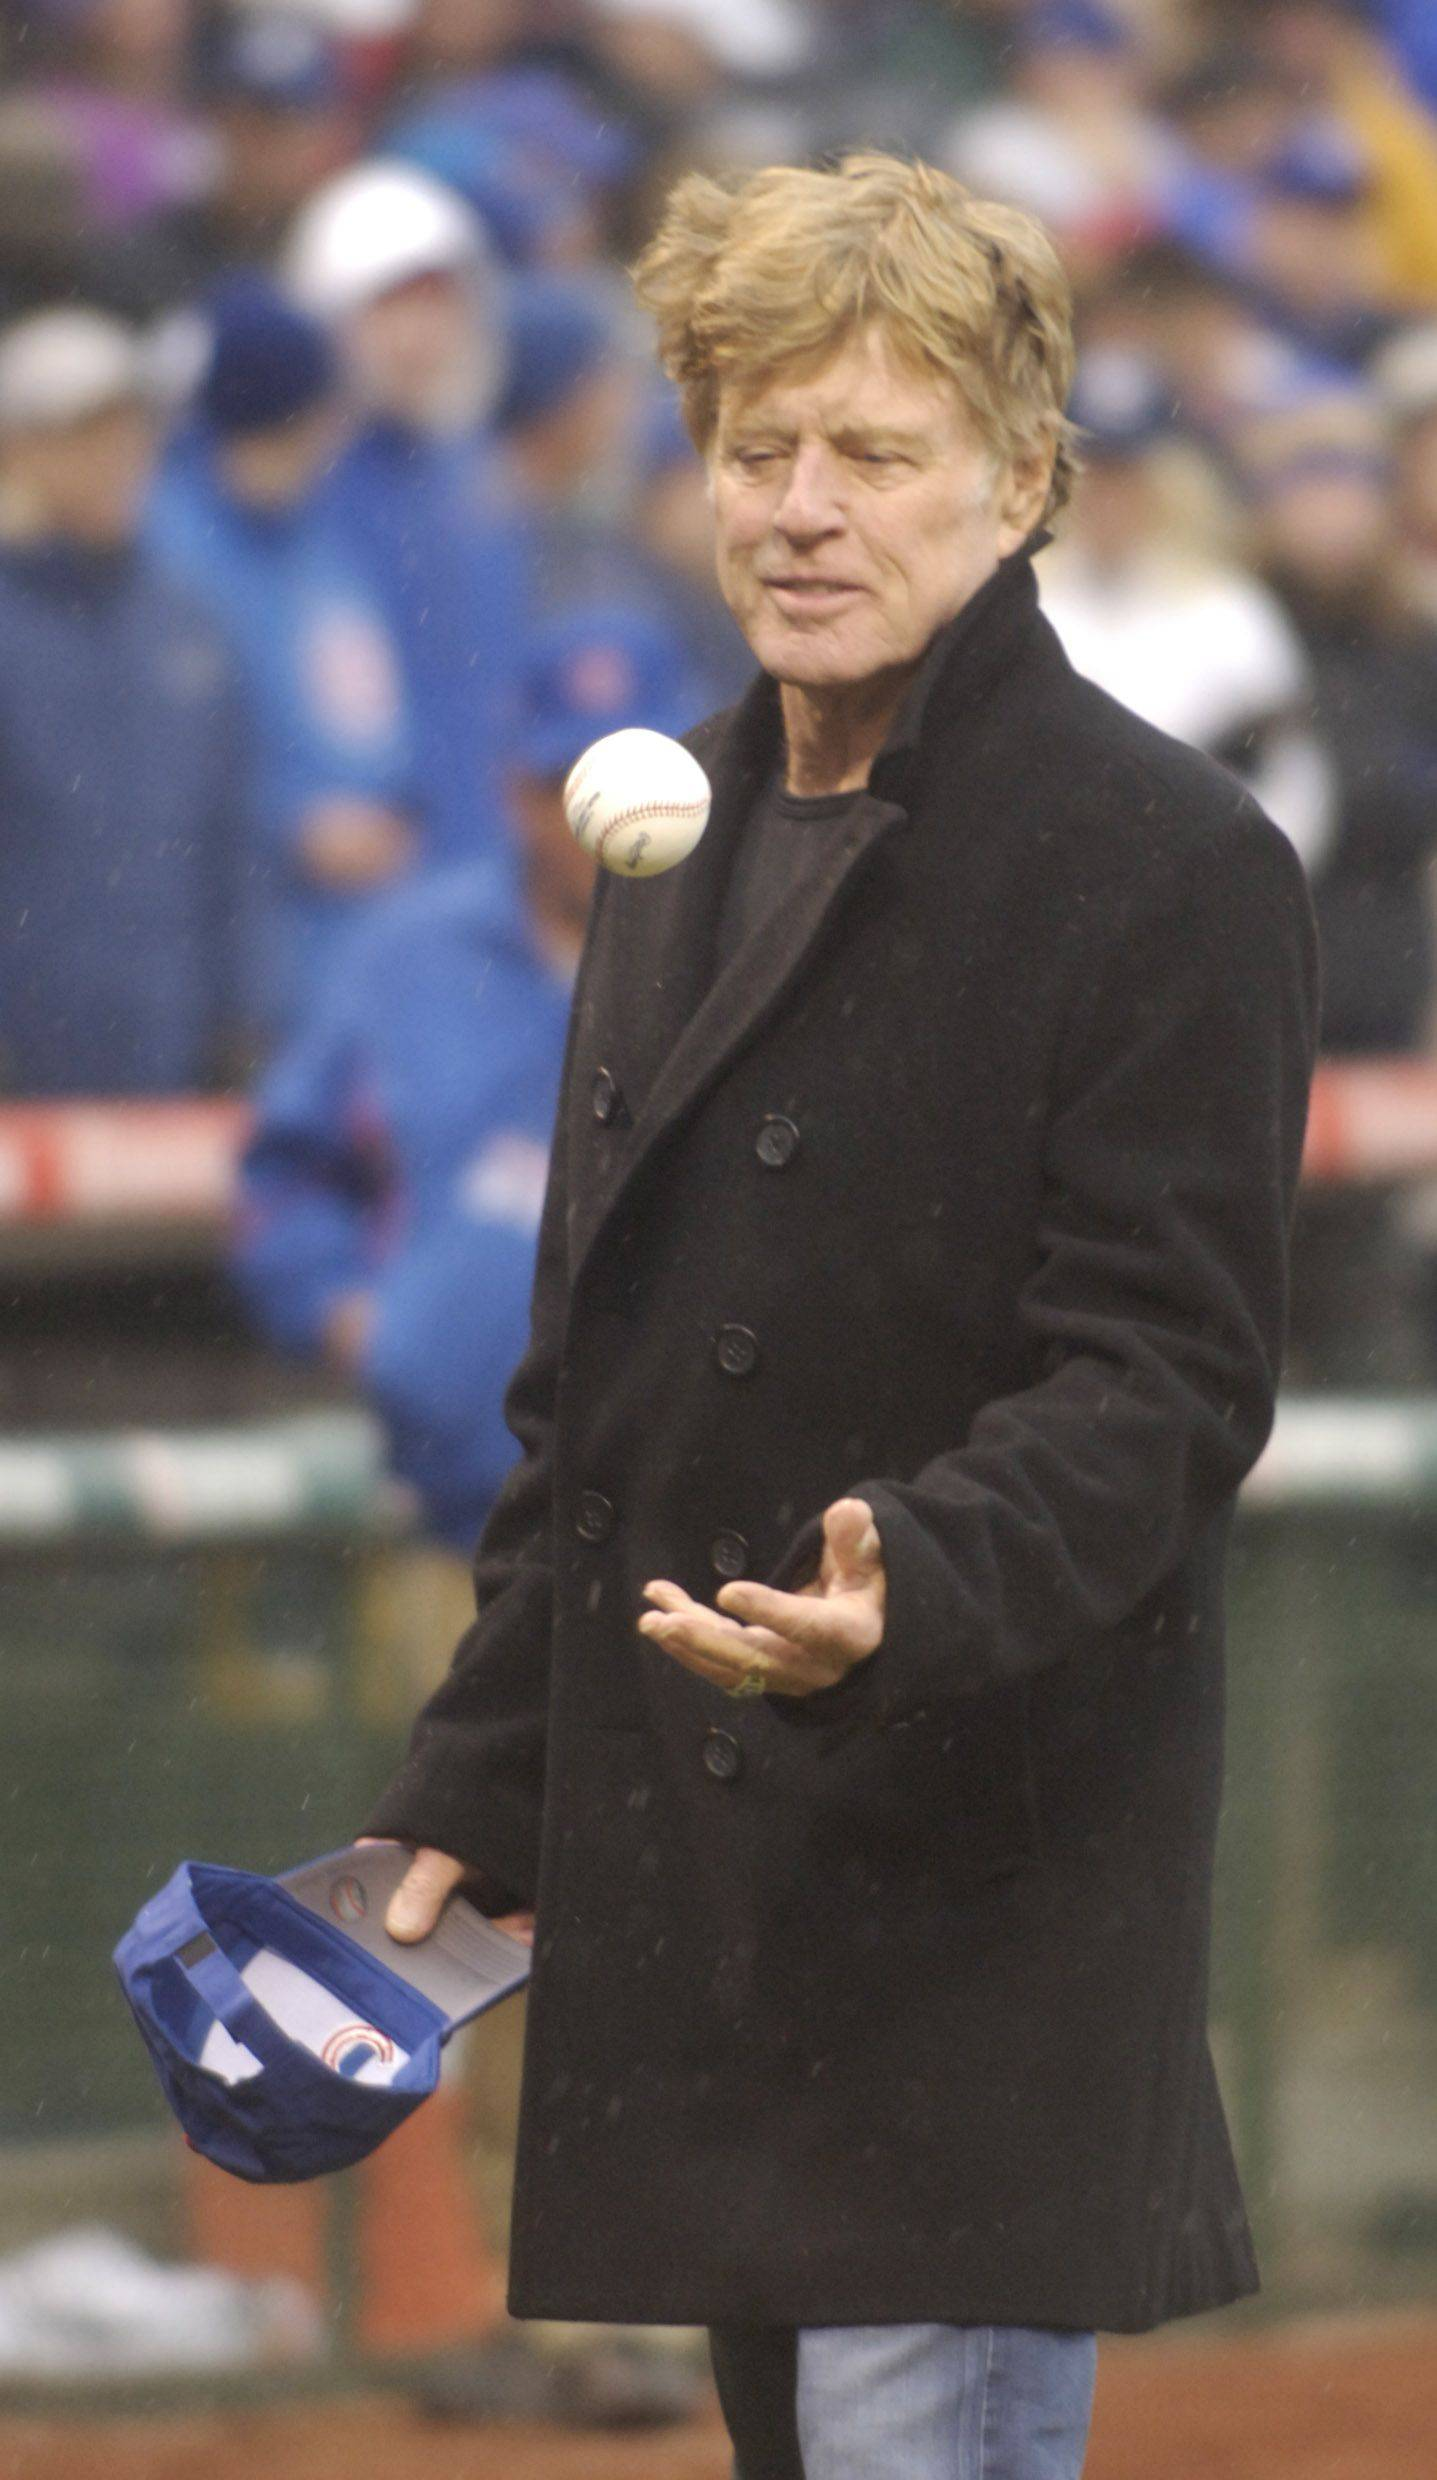 Actor and director Robert Redford flips the ball to himself prior to throwing out the first pitch .